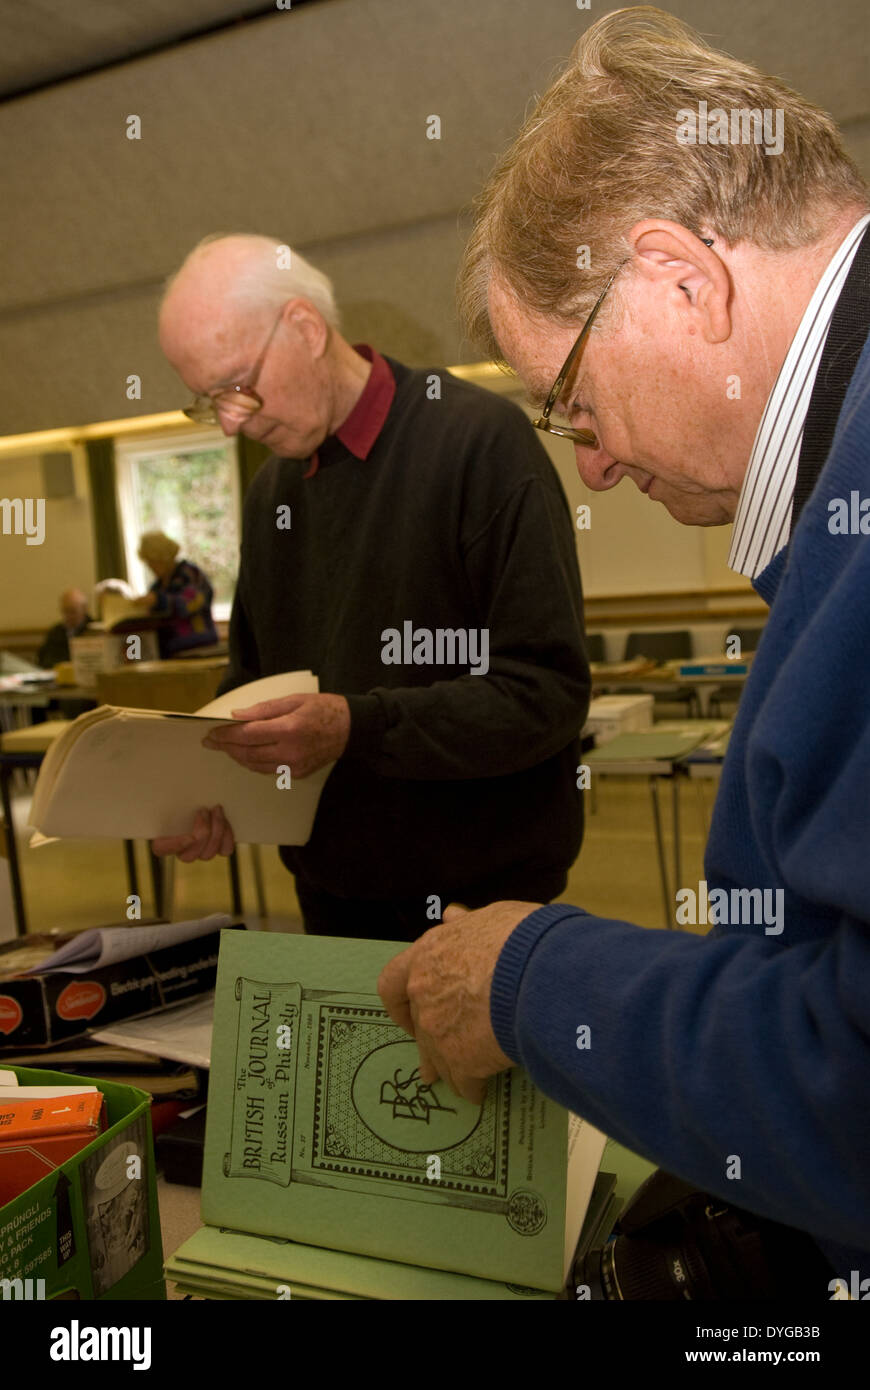 Elderly men attending a stamp auction and perusing items to be sold, Petersfield, Hampshire, UK. - Stock Image